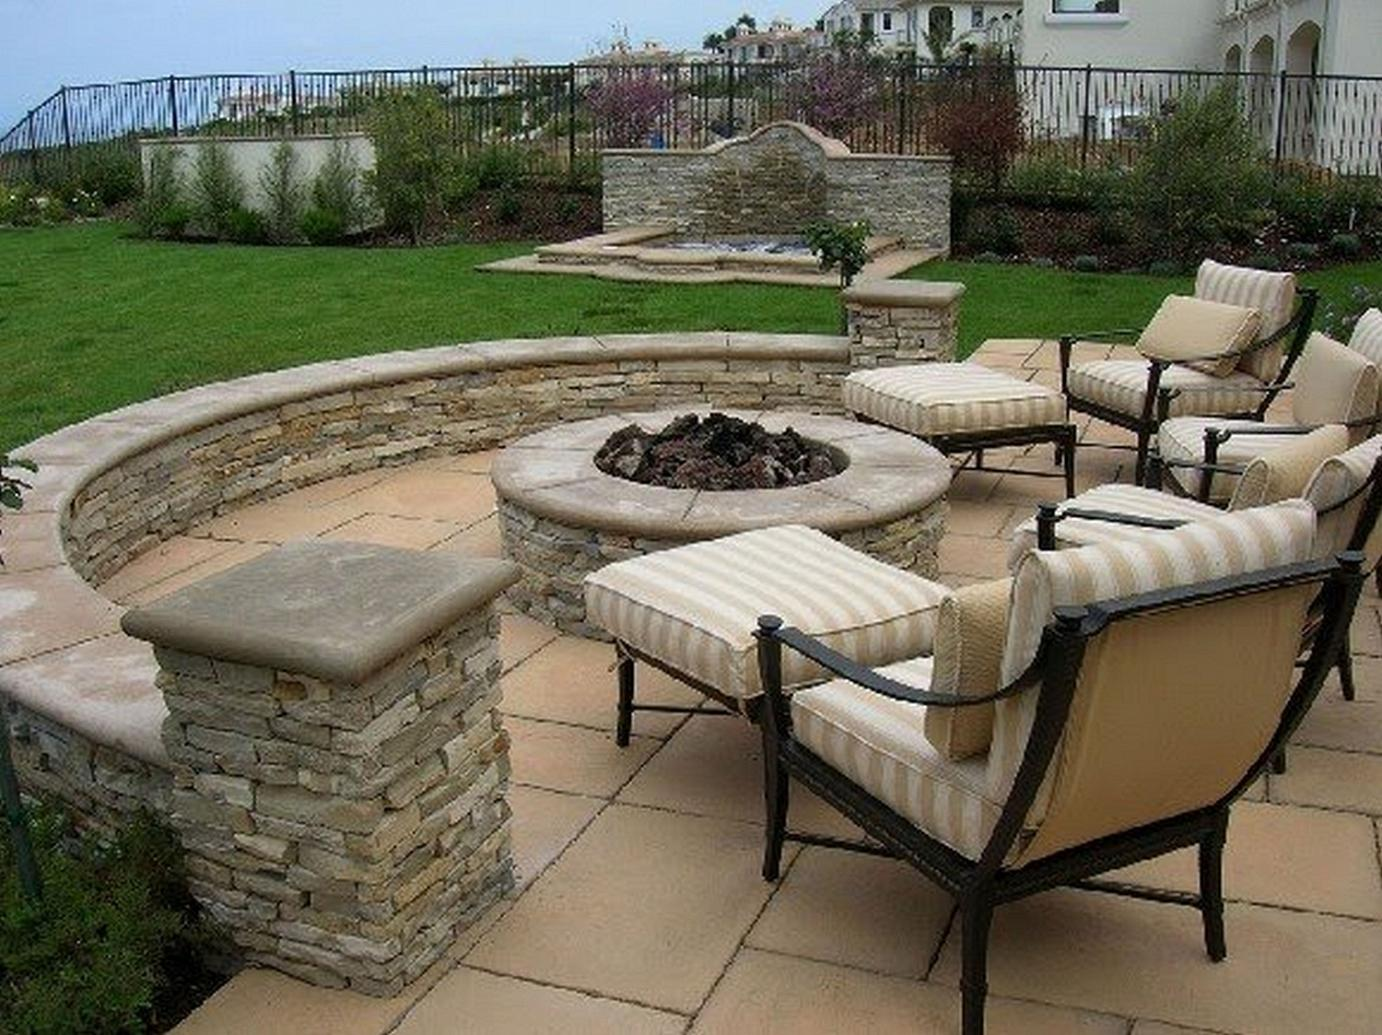 Backyard patio ideas on a budget large and beautiful for Backyard ideas on a budget